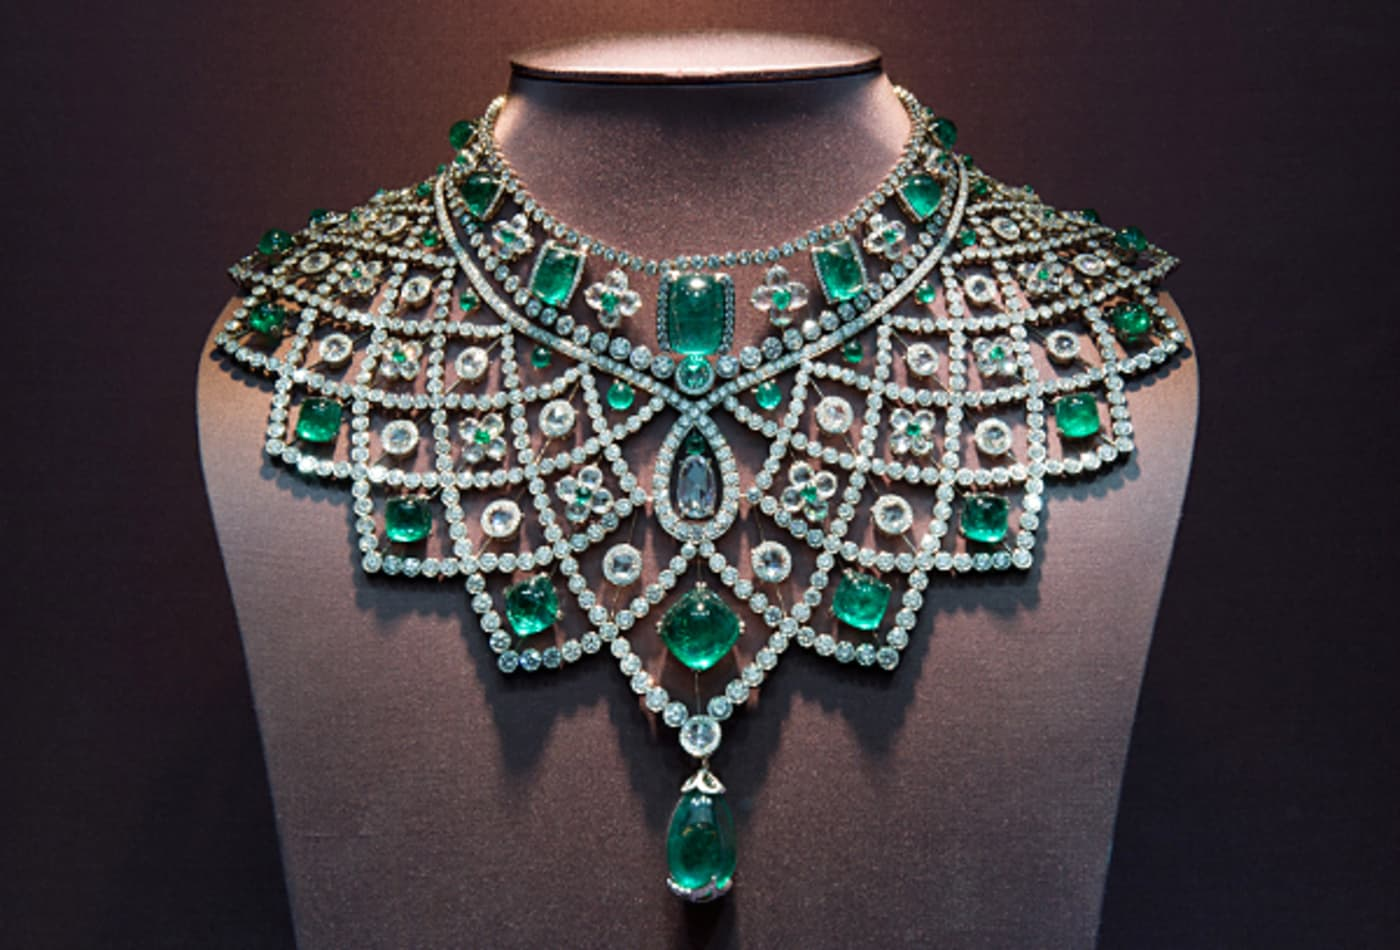 Faberge- Emerald Necklace.jpg